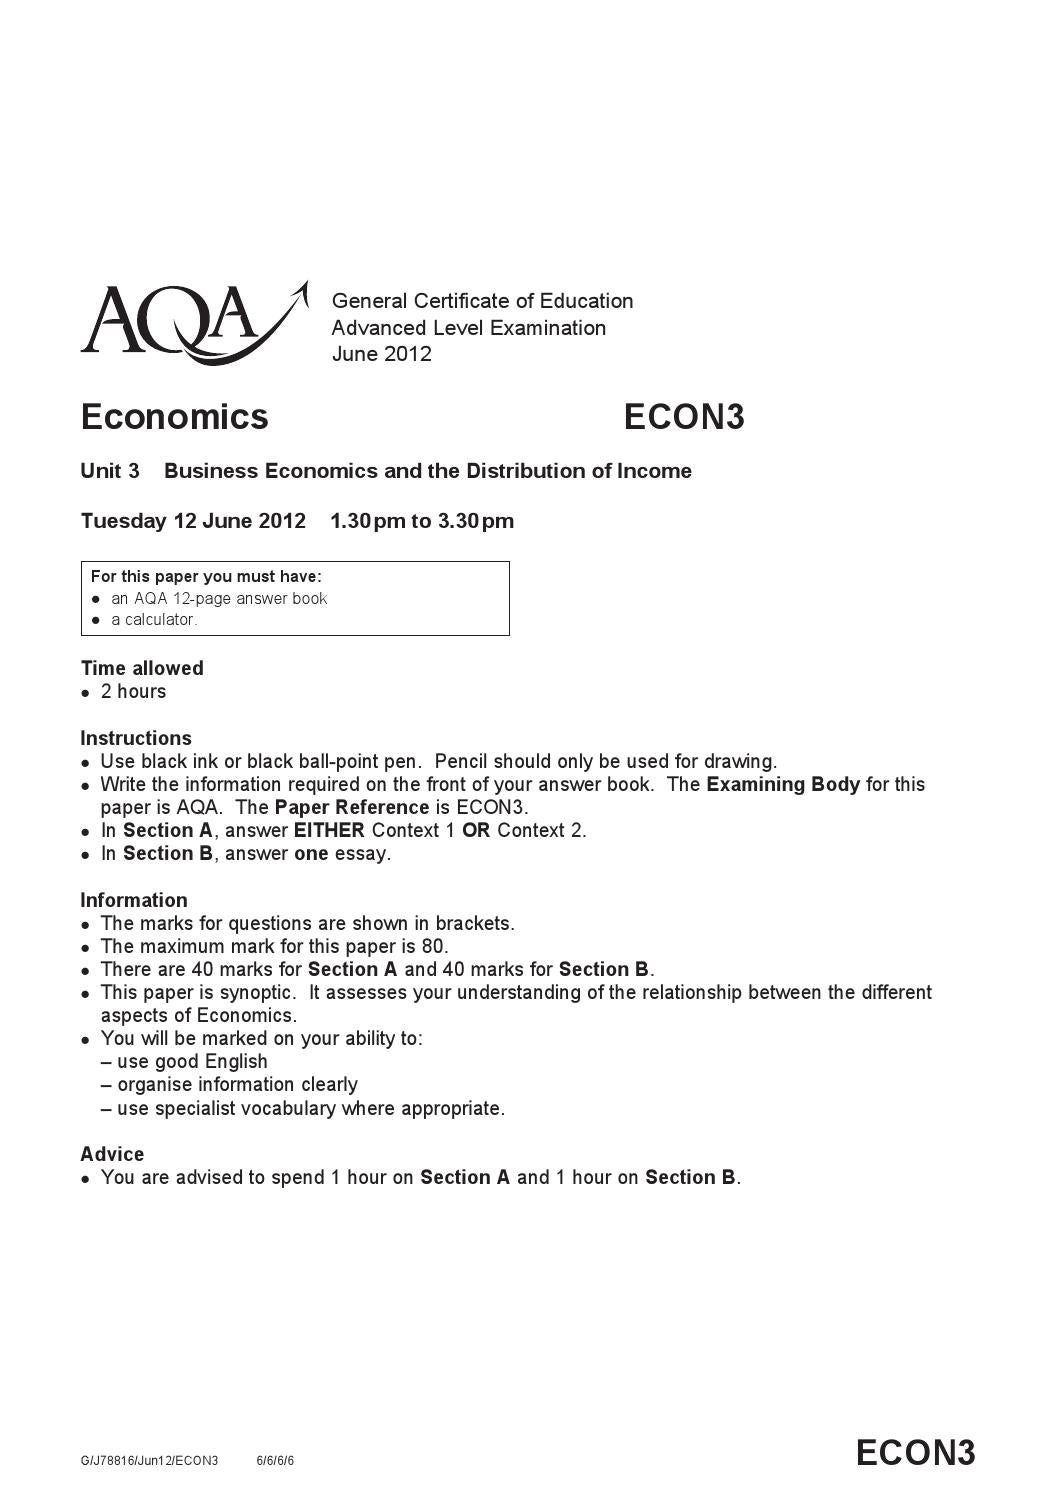 aqa bl1fp qp jun12 new style News flash new online revision guide for b1 revision powerpoint  aqa- bl1fp-examiners report-jun-12pdf higher tier  b1 model answersdoc.